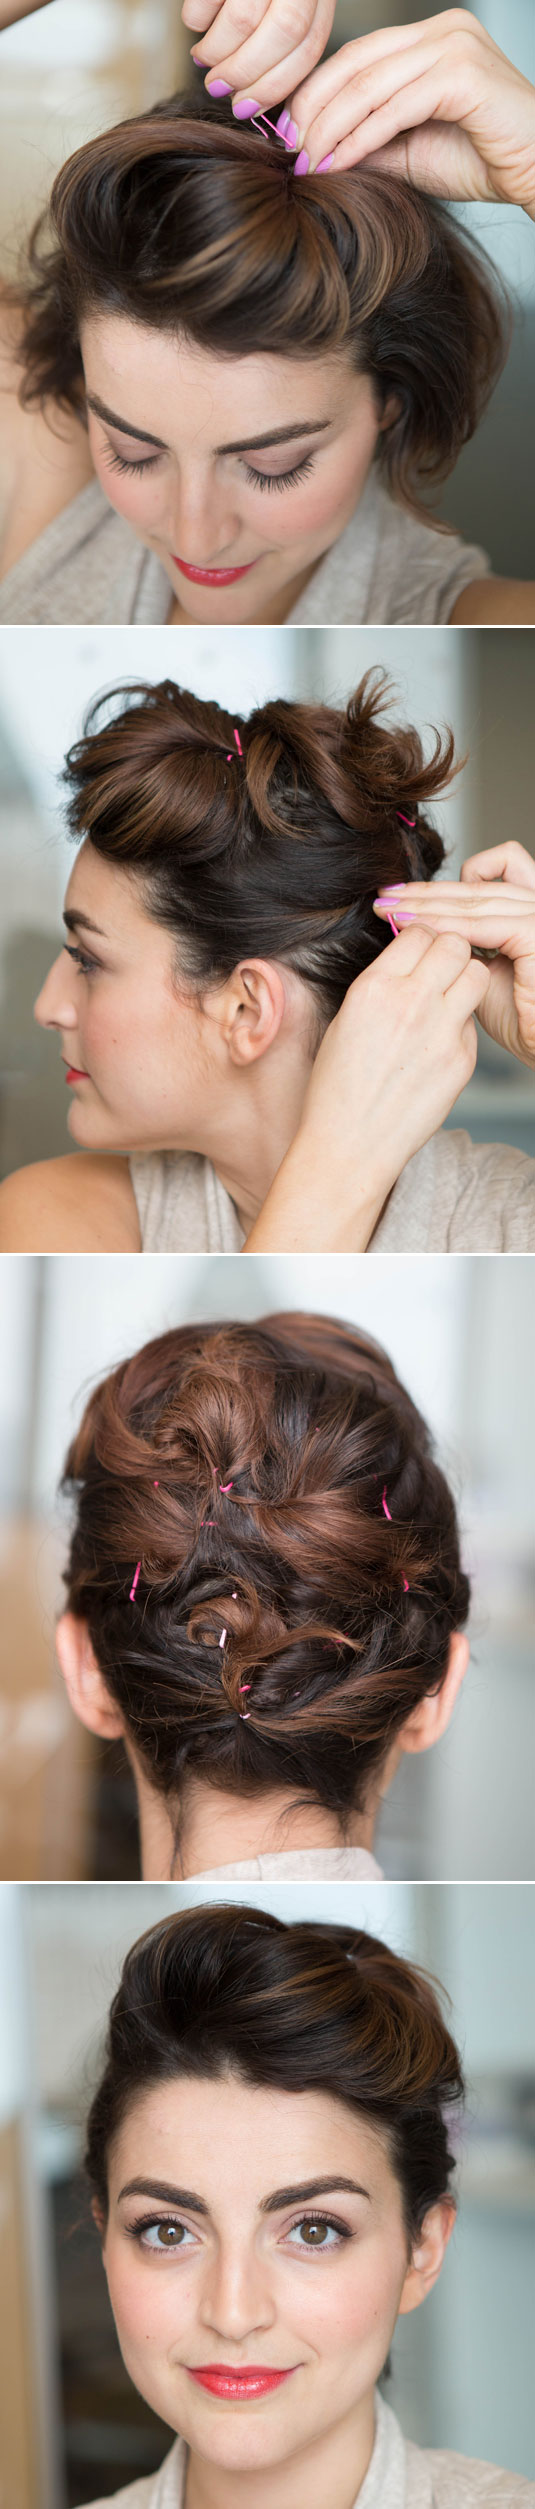 Prime How To Put Your Hair Up Cute With Short Short Hair Fashions Short Hairstyles Gunalazisus